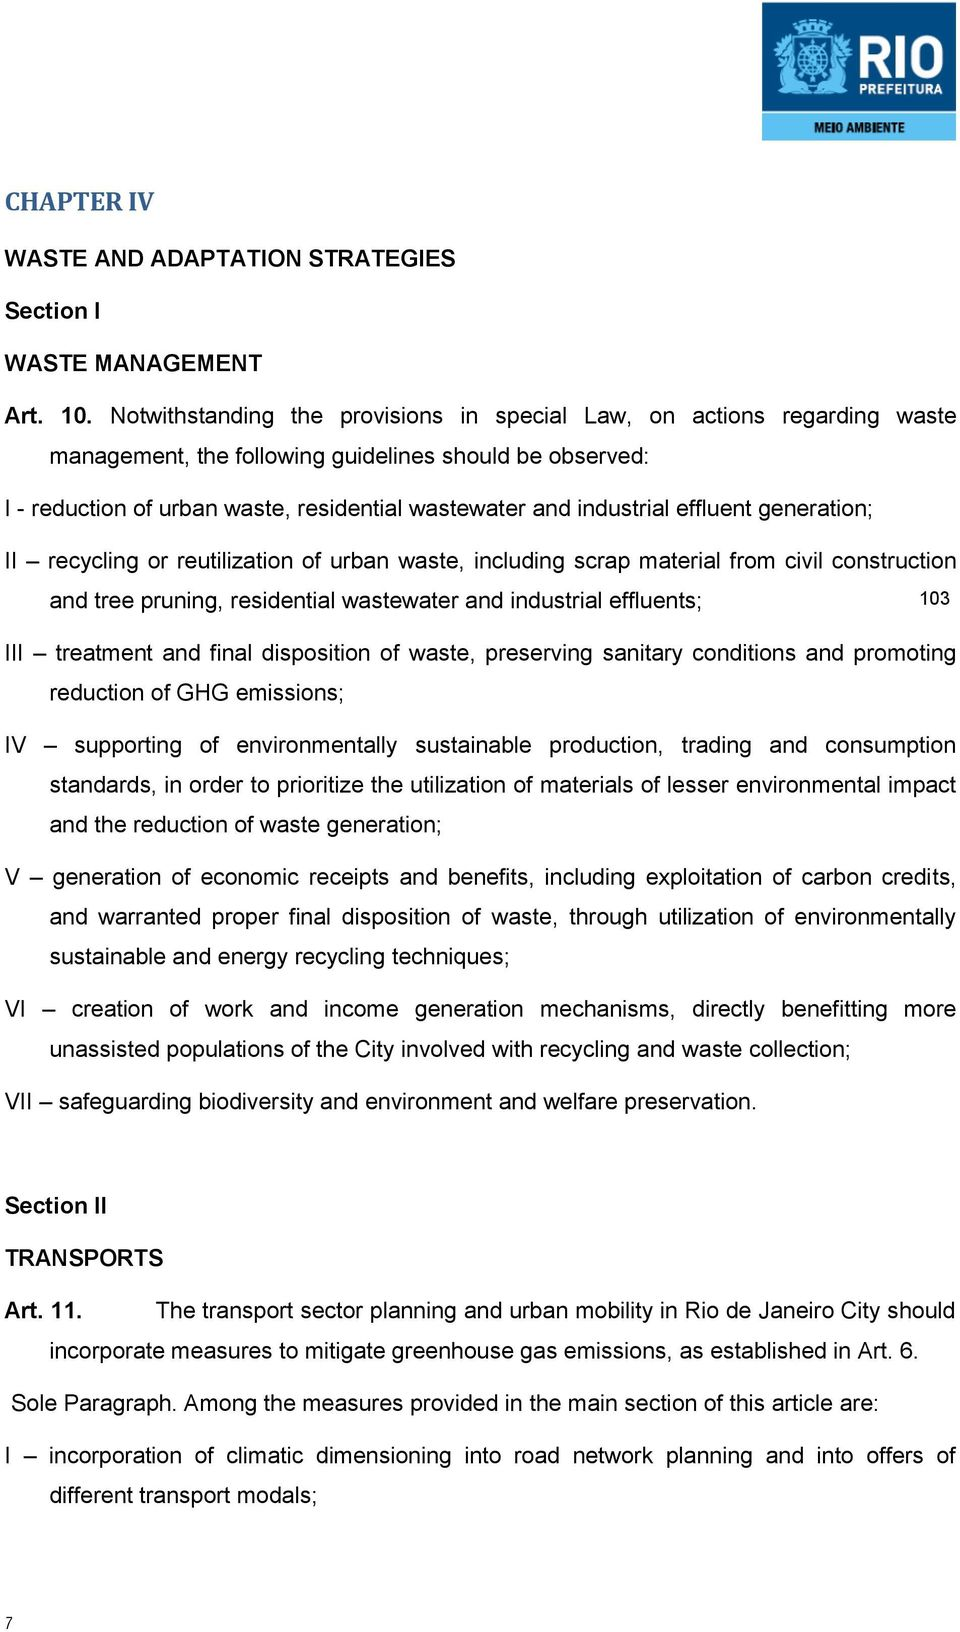 effluent generation; II recycling or reutilization of urban waste, including scrap material from civil construction and tree pruning, residential wastewater and industrial effluents; III treatment